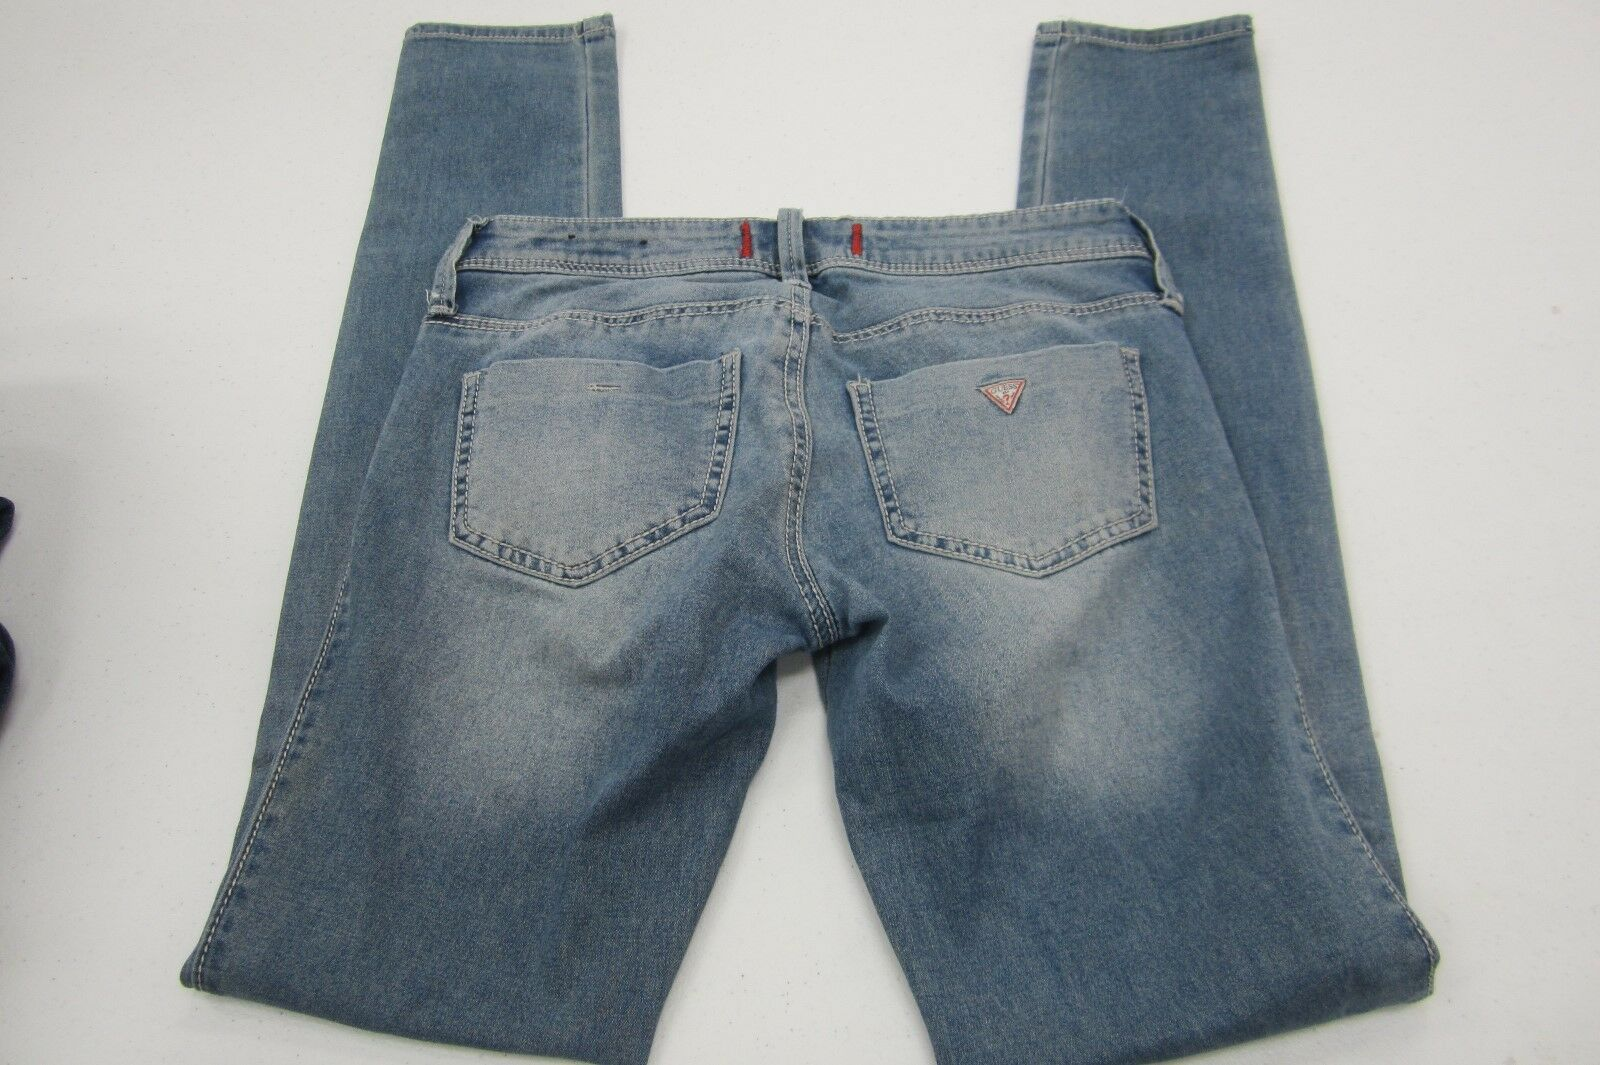 NWT  Guess Low Rise Jeggings Maxine Fit Denim Jeans SZ 24 x 31 VERY CUTE